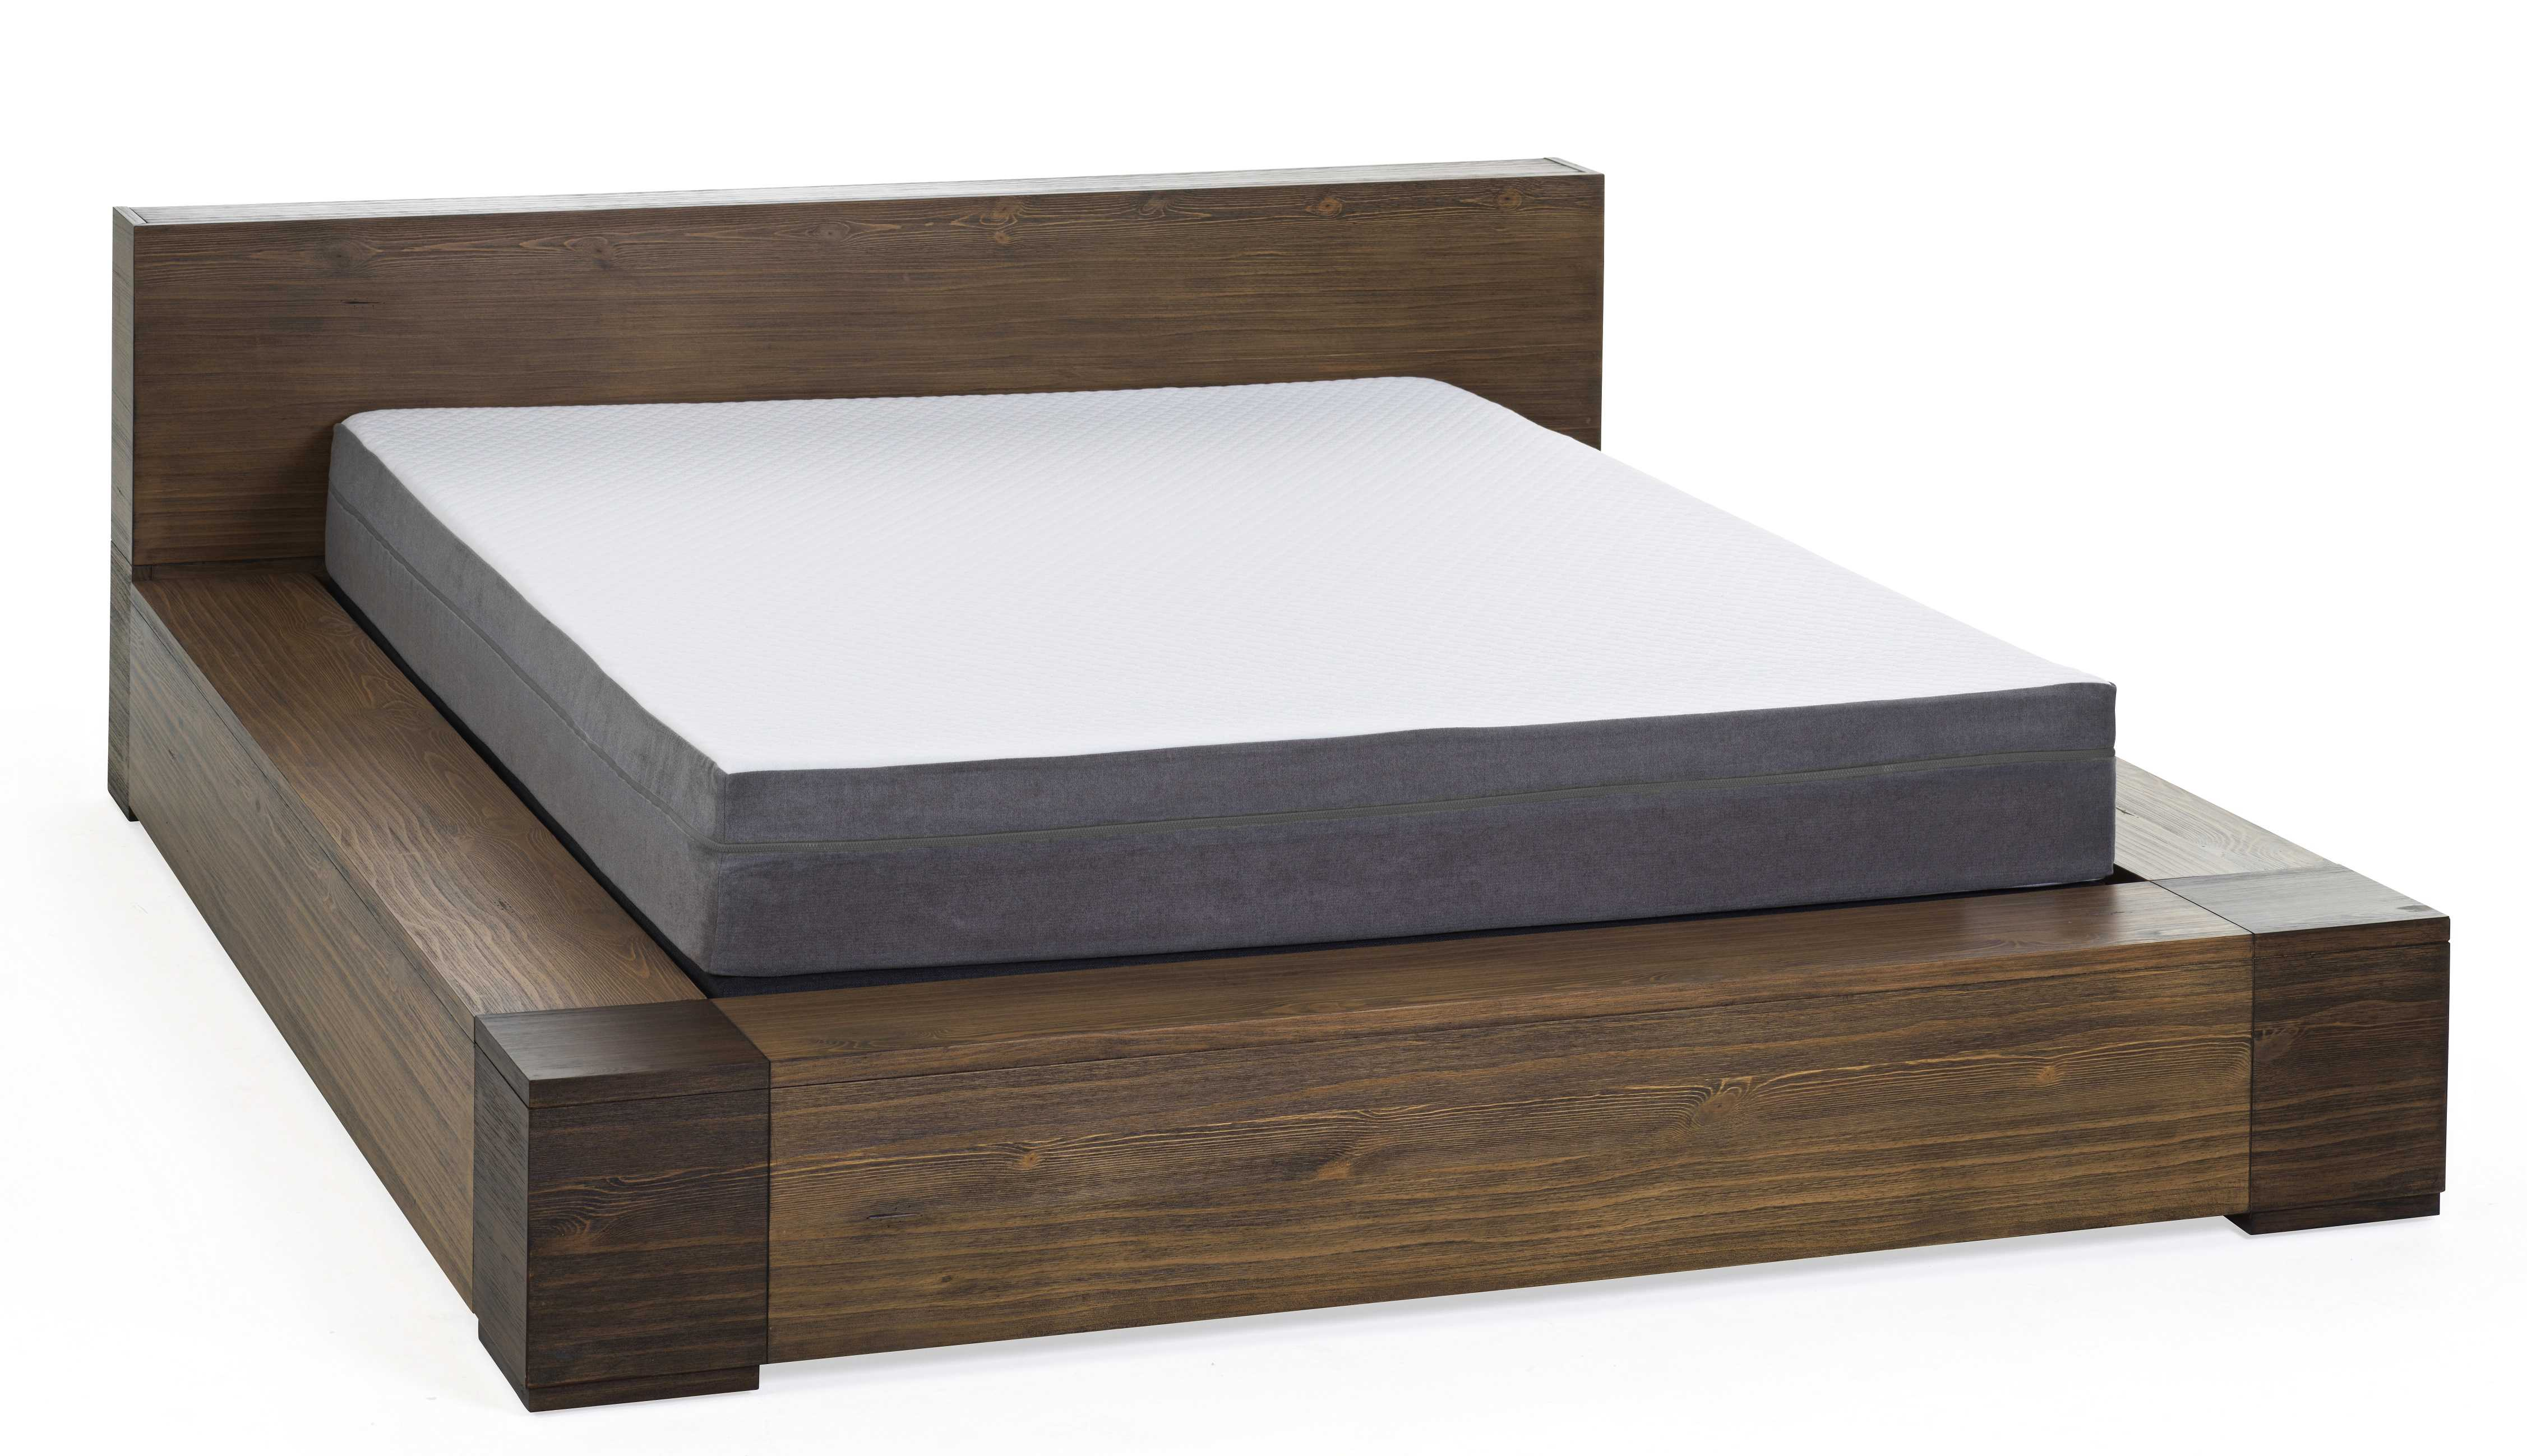 Home Roots 8 Inch Firm Cal King Memory Foam Mattress The Classy Home